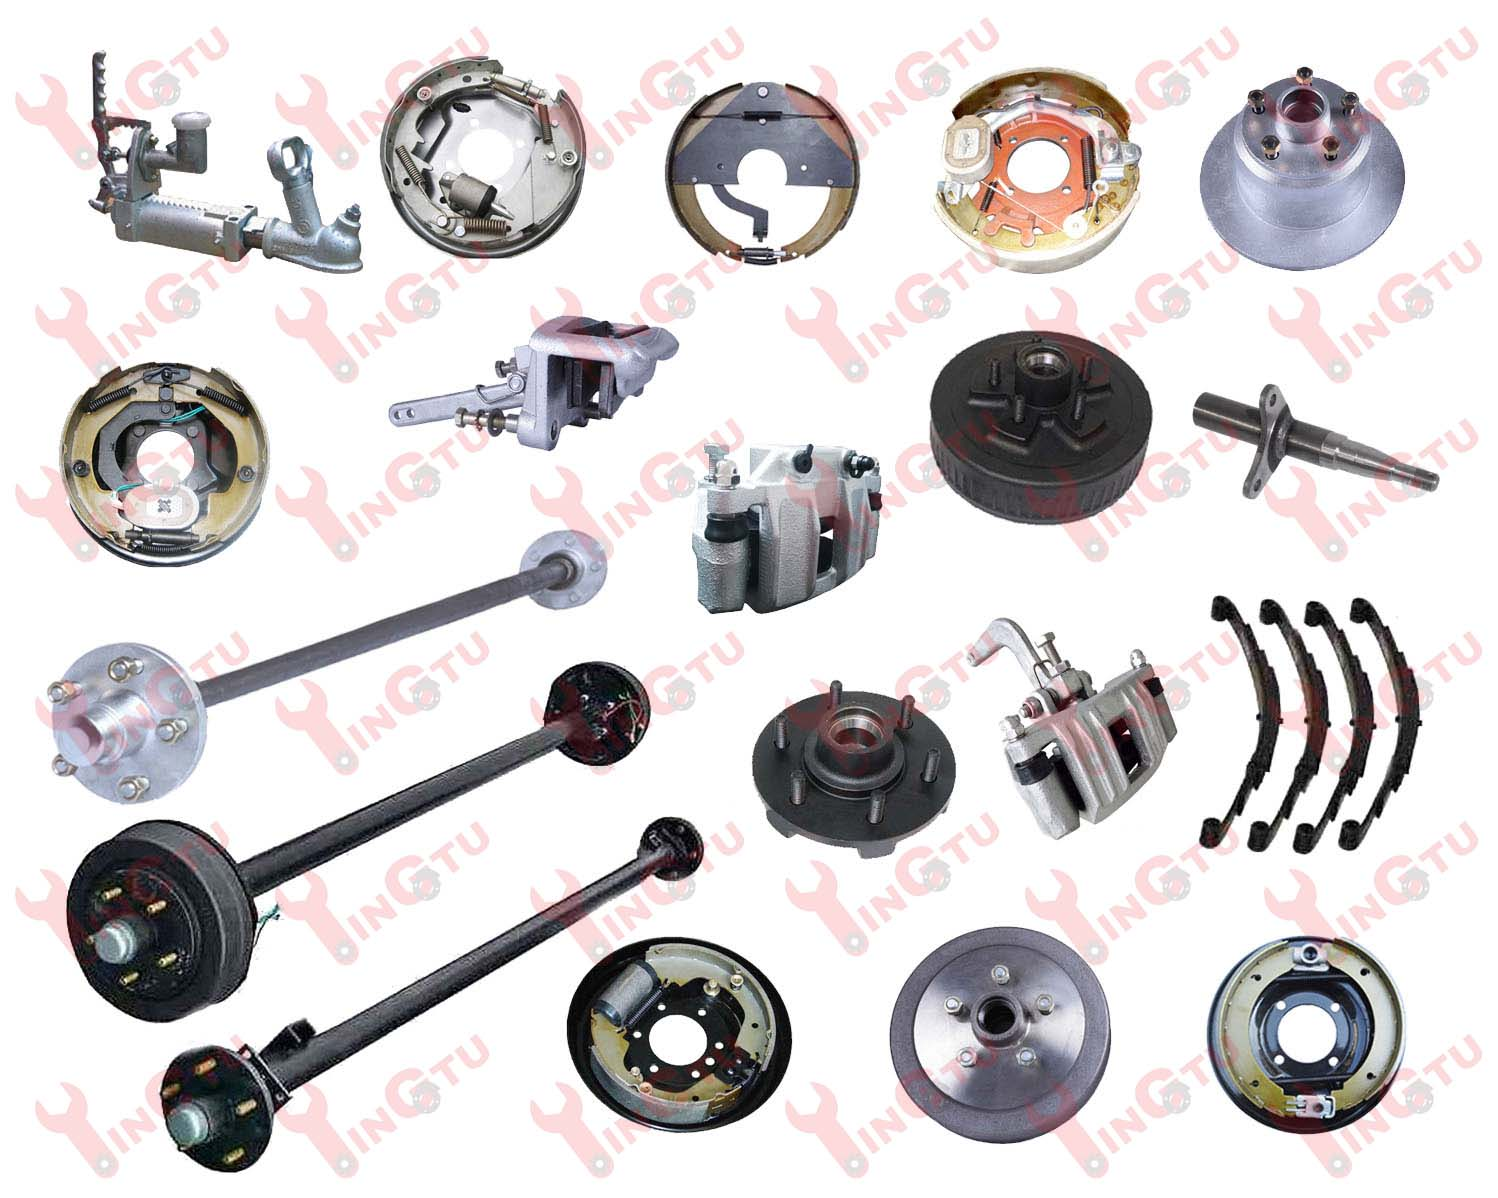 Sell High Quality Trailer Axles and Repair Parts